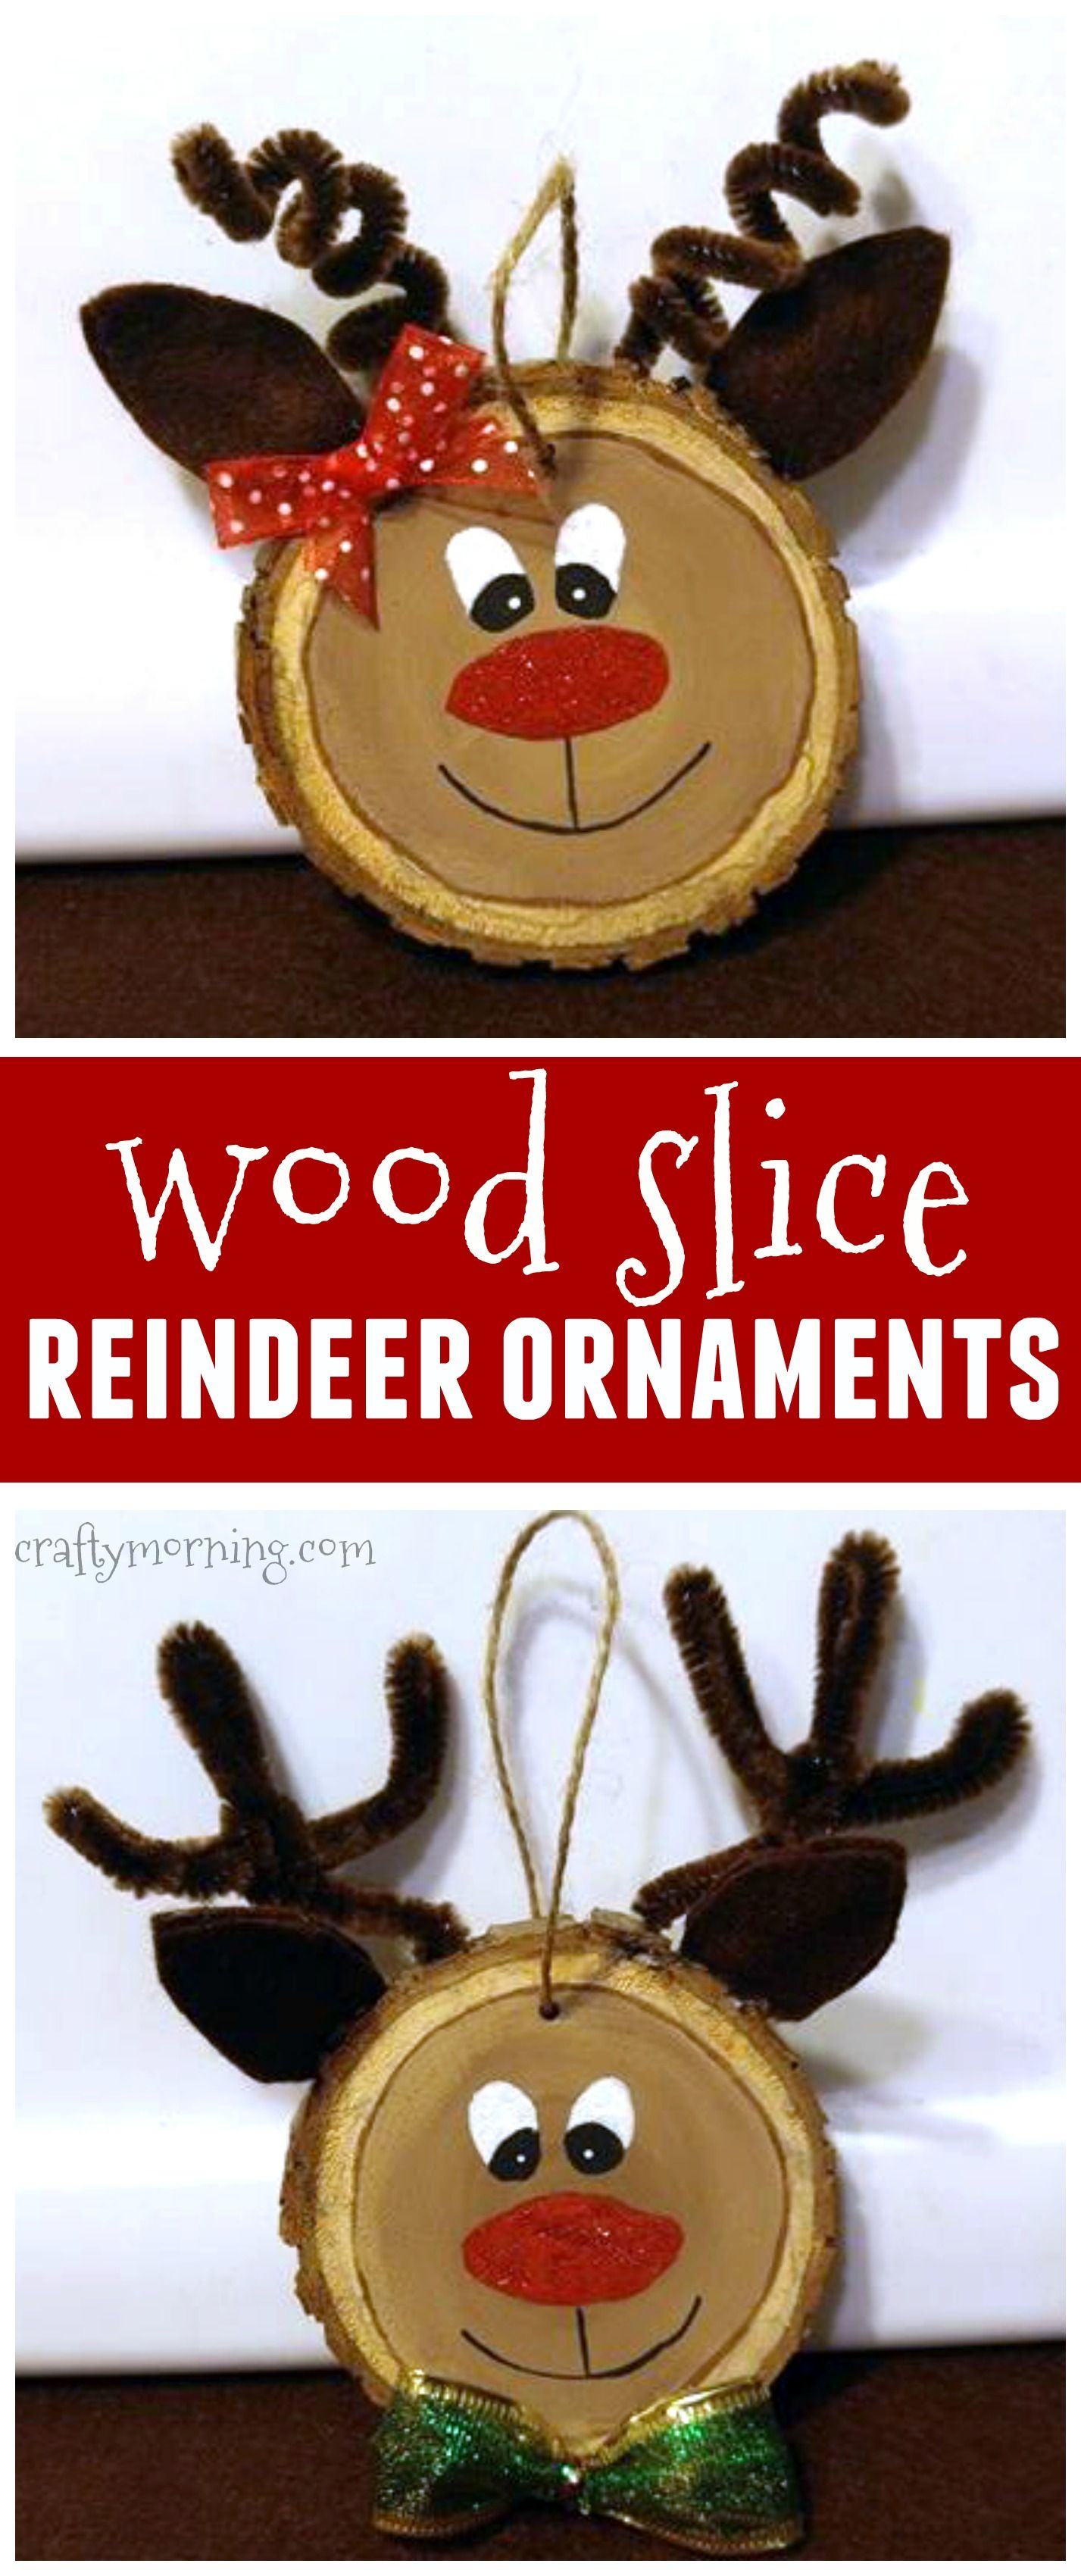 Wood Slice Reindeer Ornaments For A Kids Christmas Craft These